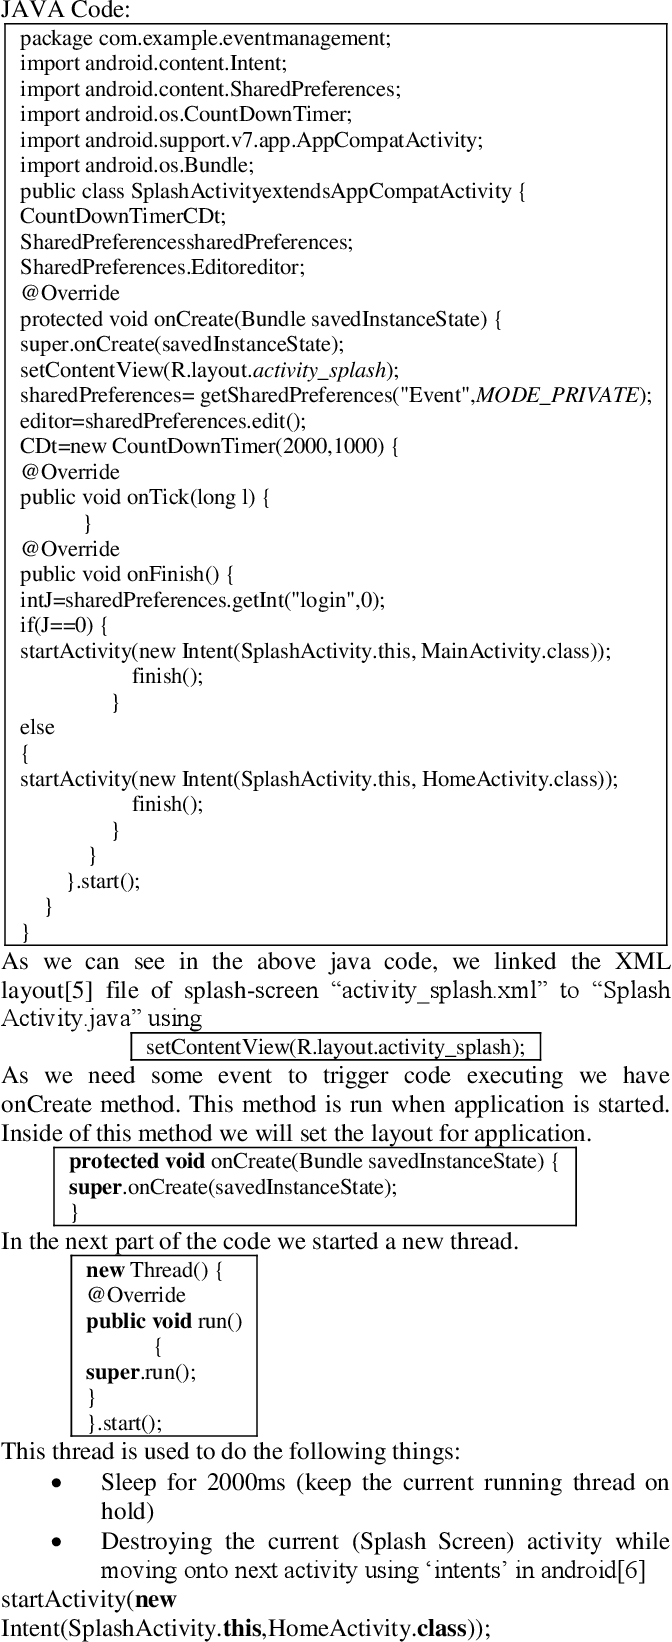 PDF] Design and Implementation of an Android Application for